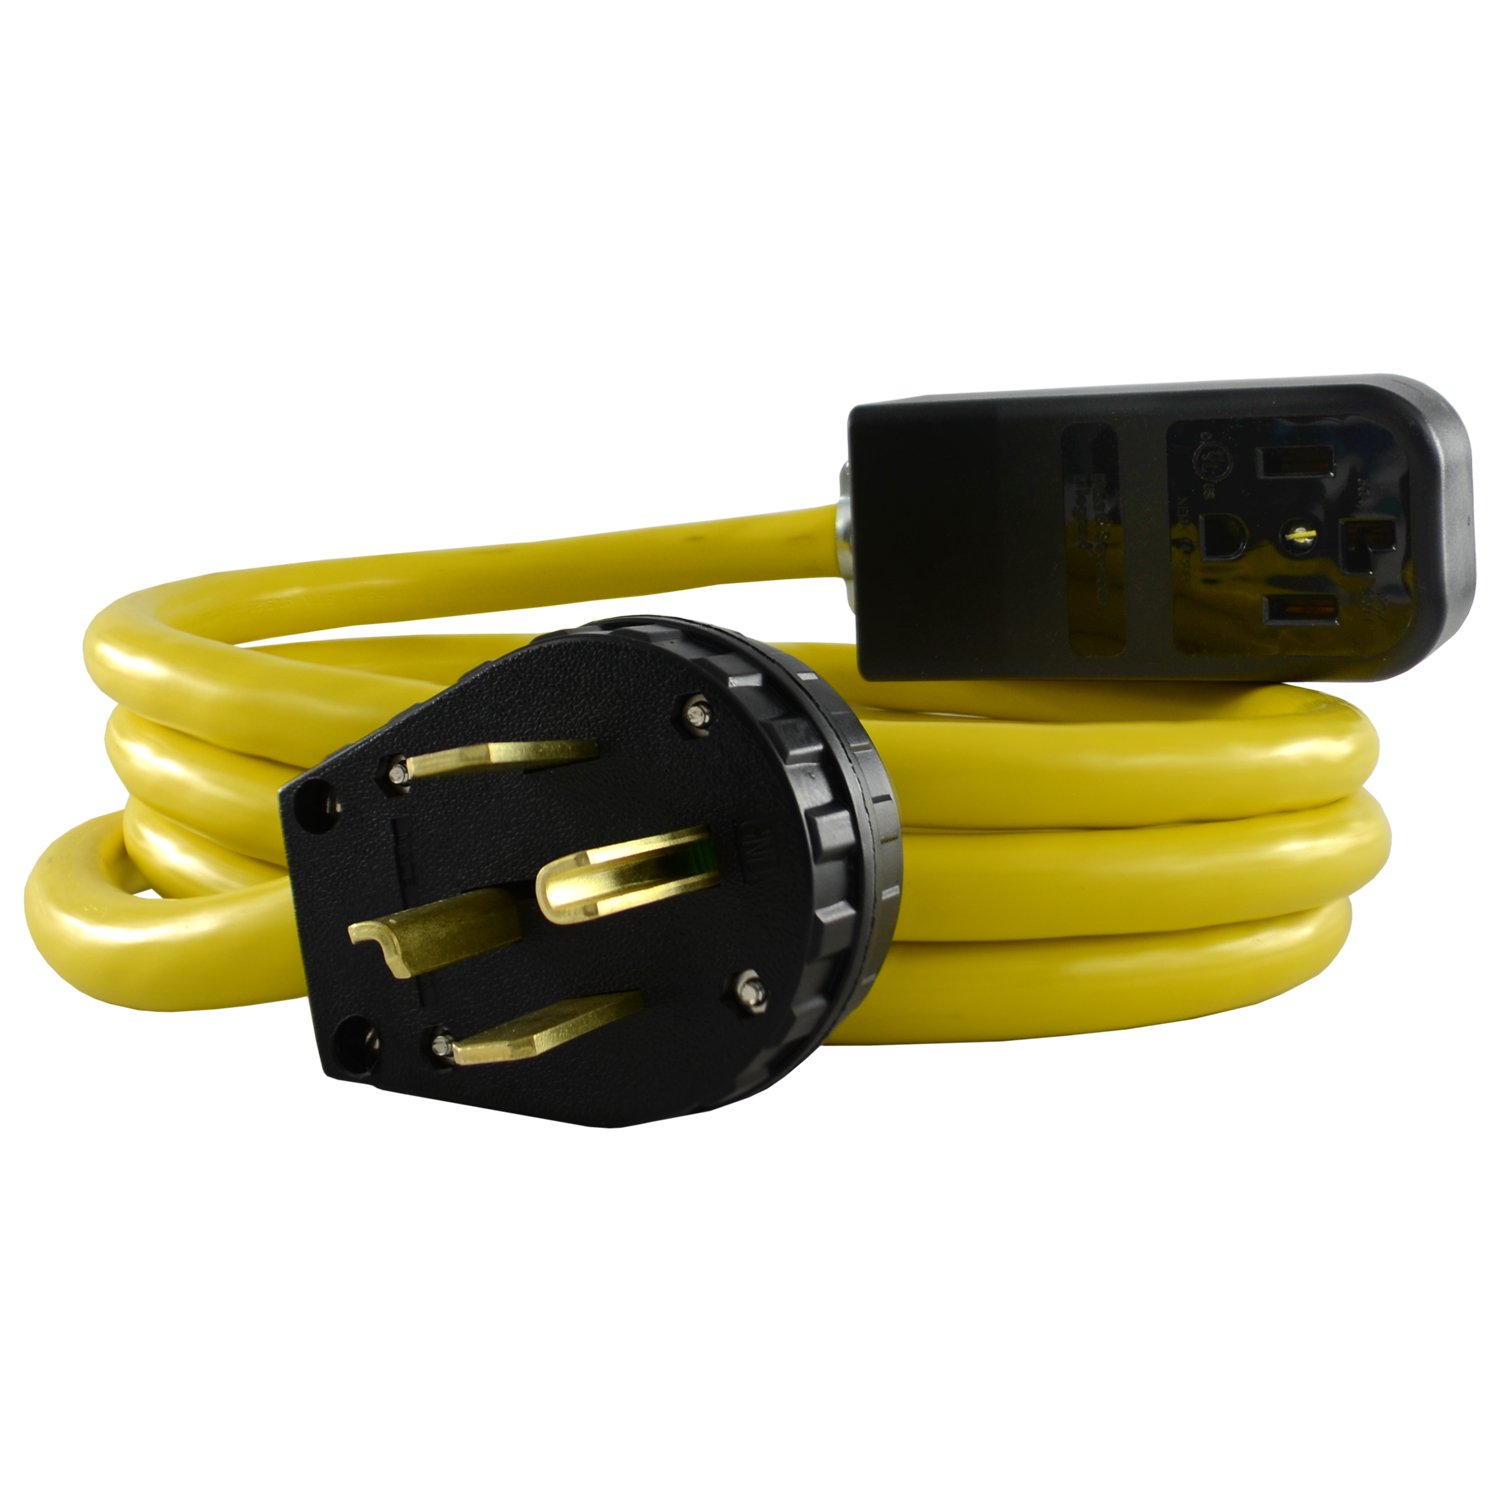 Conntek SB1430PR-010 NEMA 14-30P Heavy Duty Extension Cord, 10 Feet, 10', Black 10'